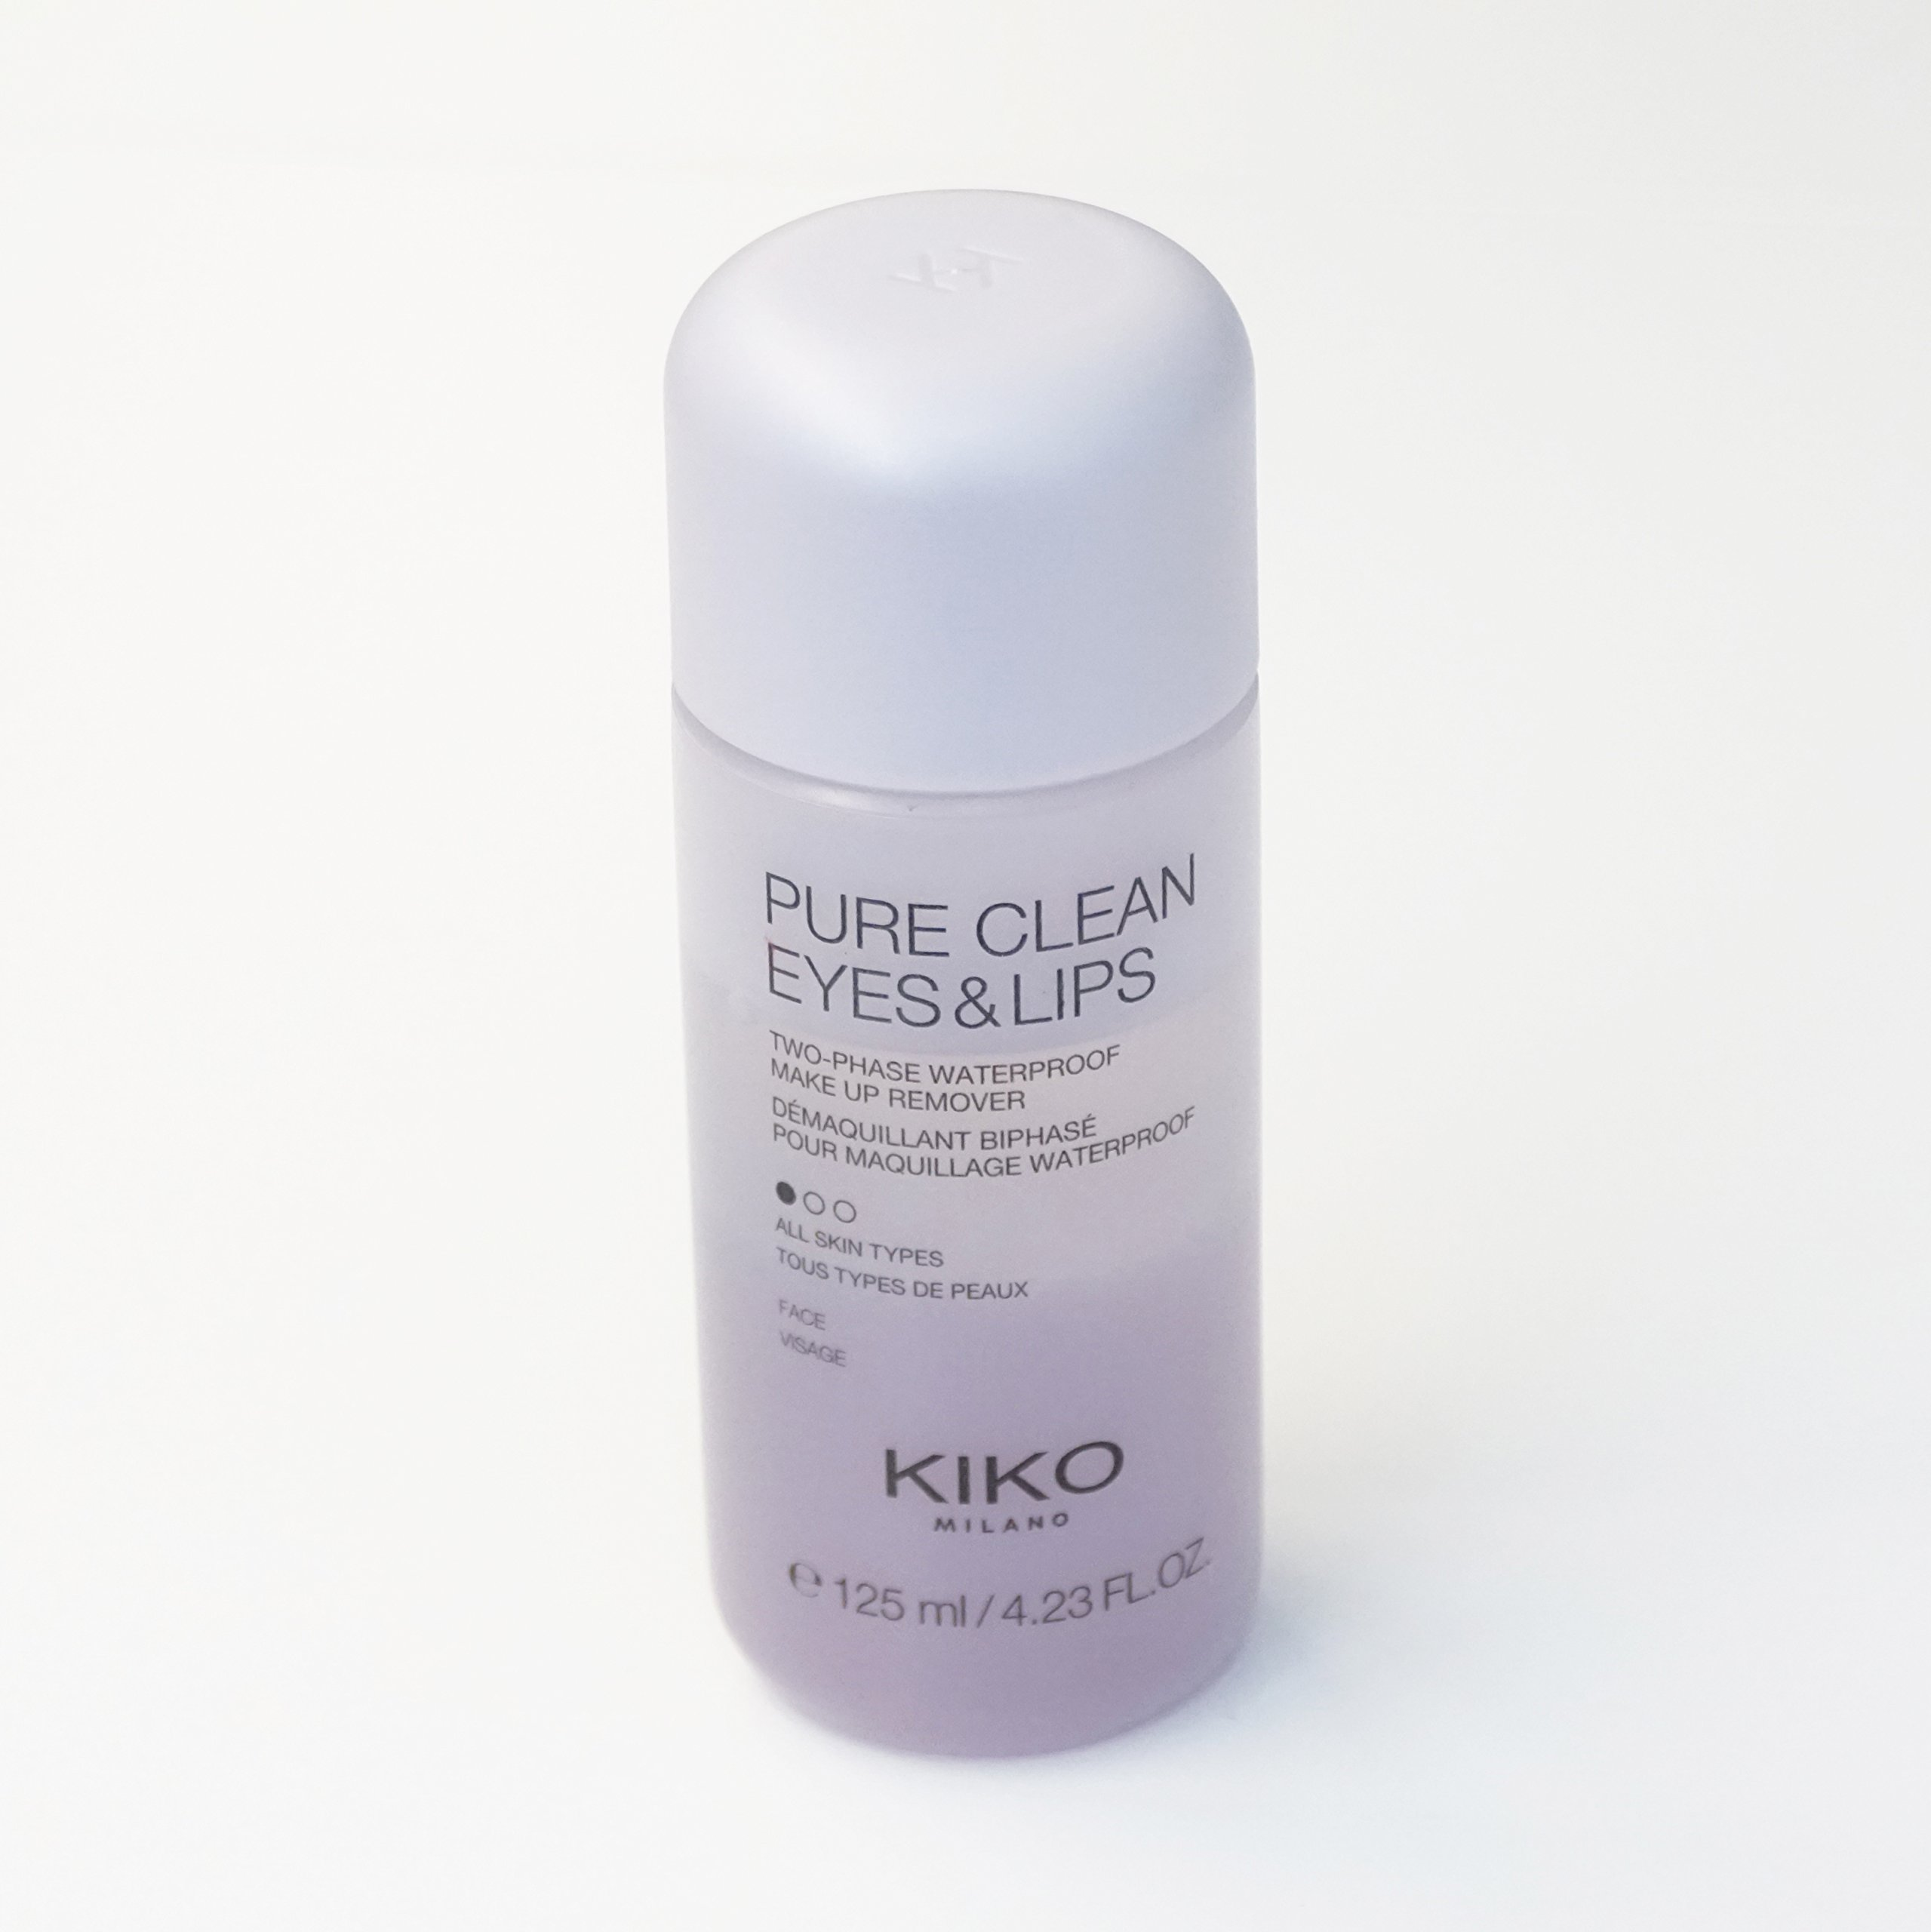 KIKO MILANO - Pure Clean Eyes & Lips Two-phase makeup remover for eyes and lips. 125 ml / 4.22 Ozl